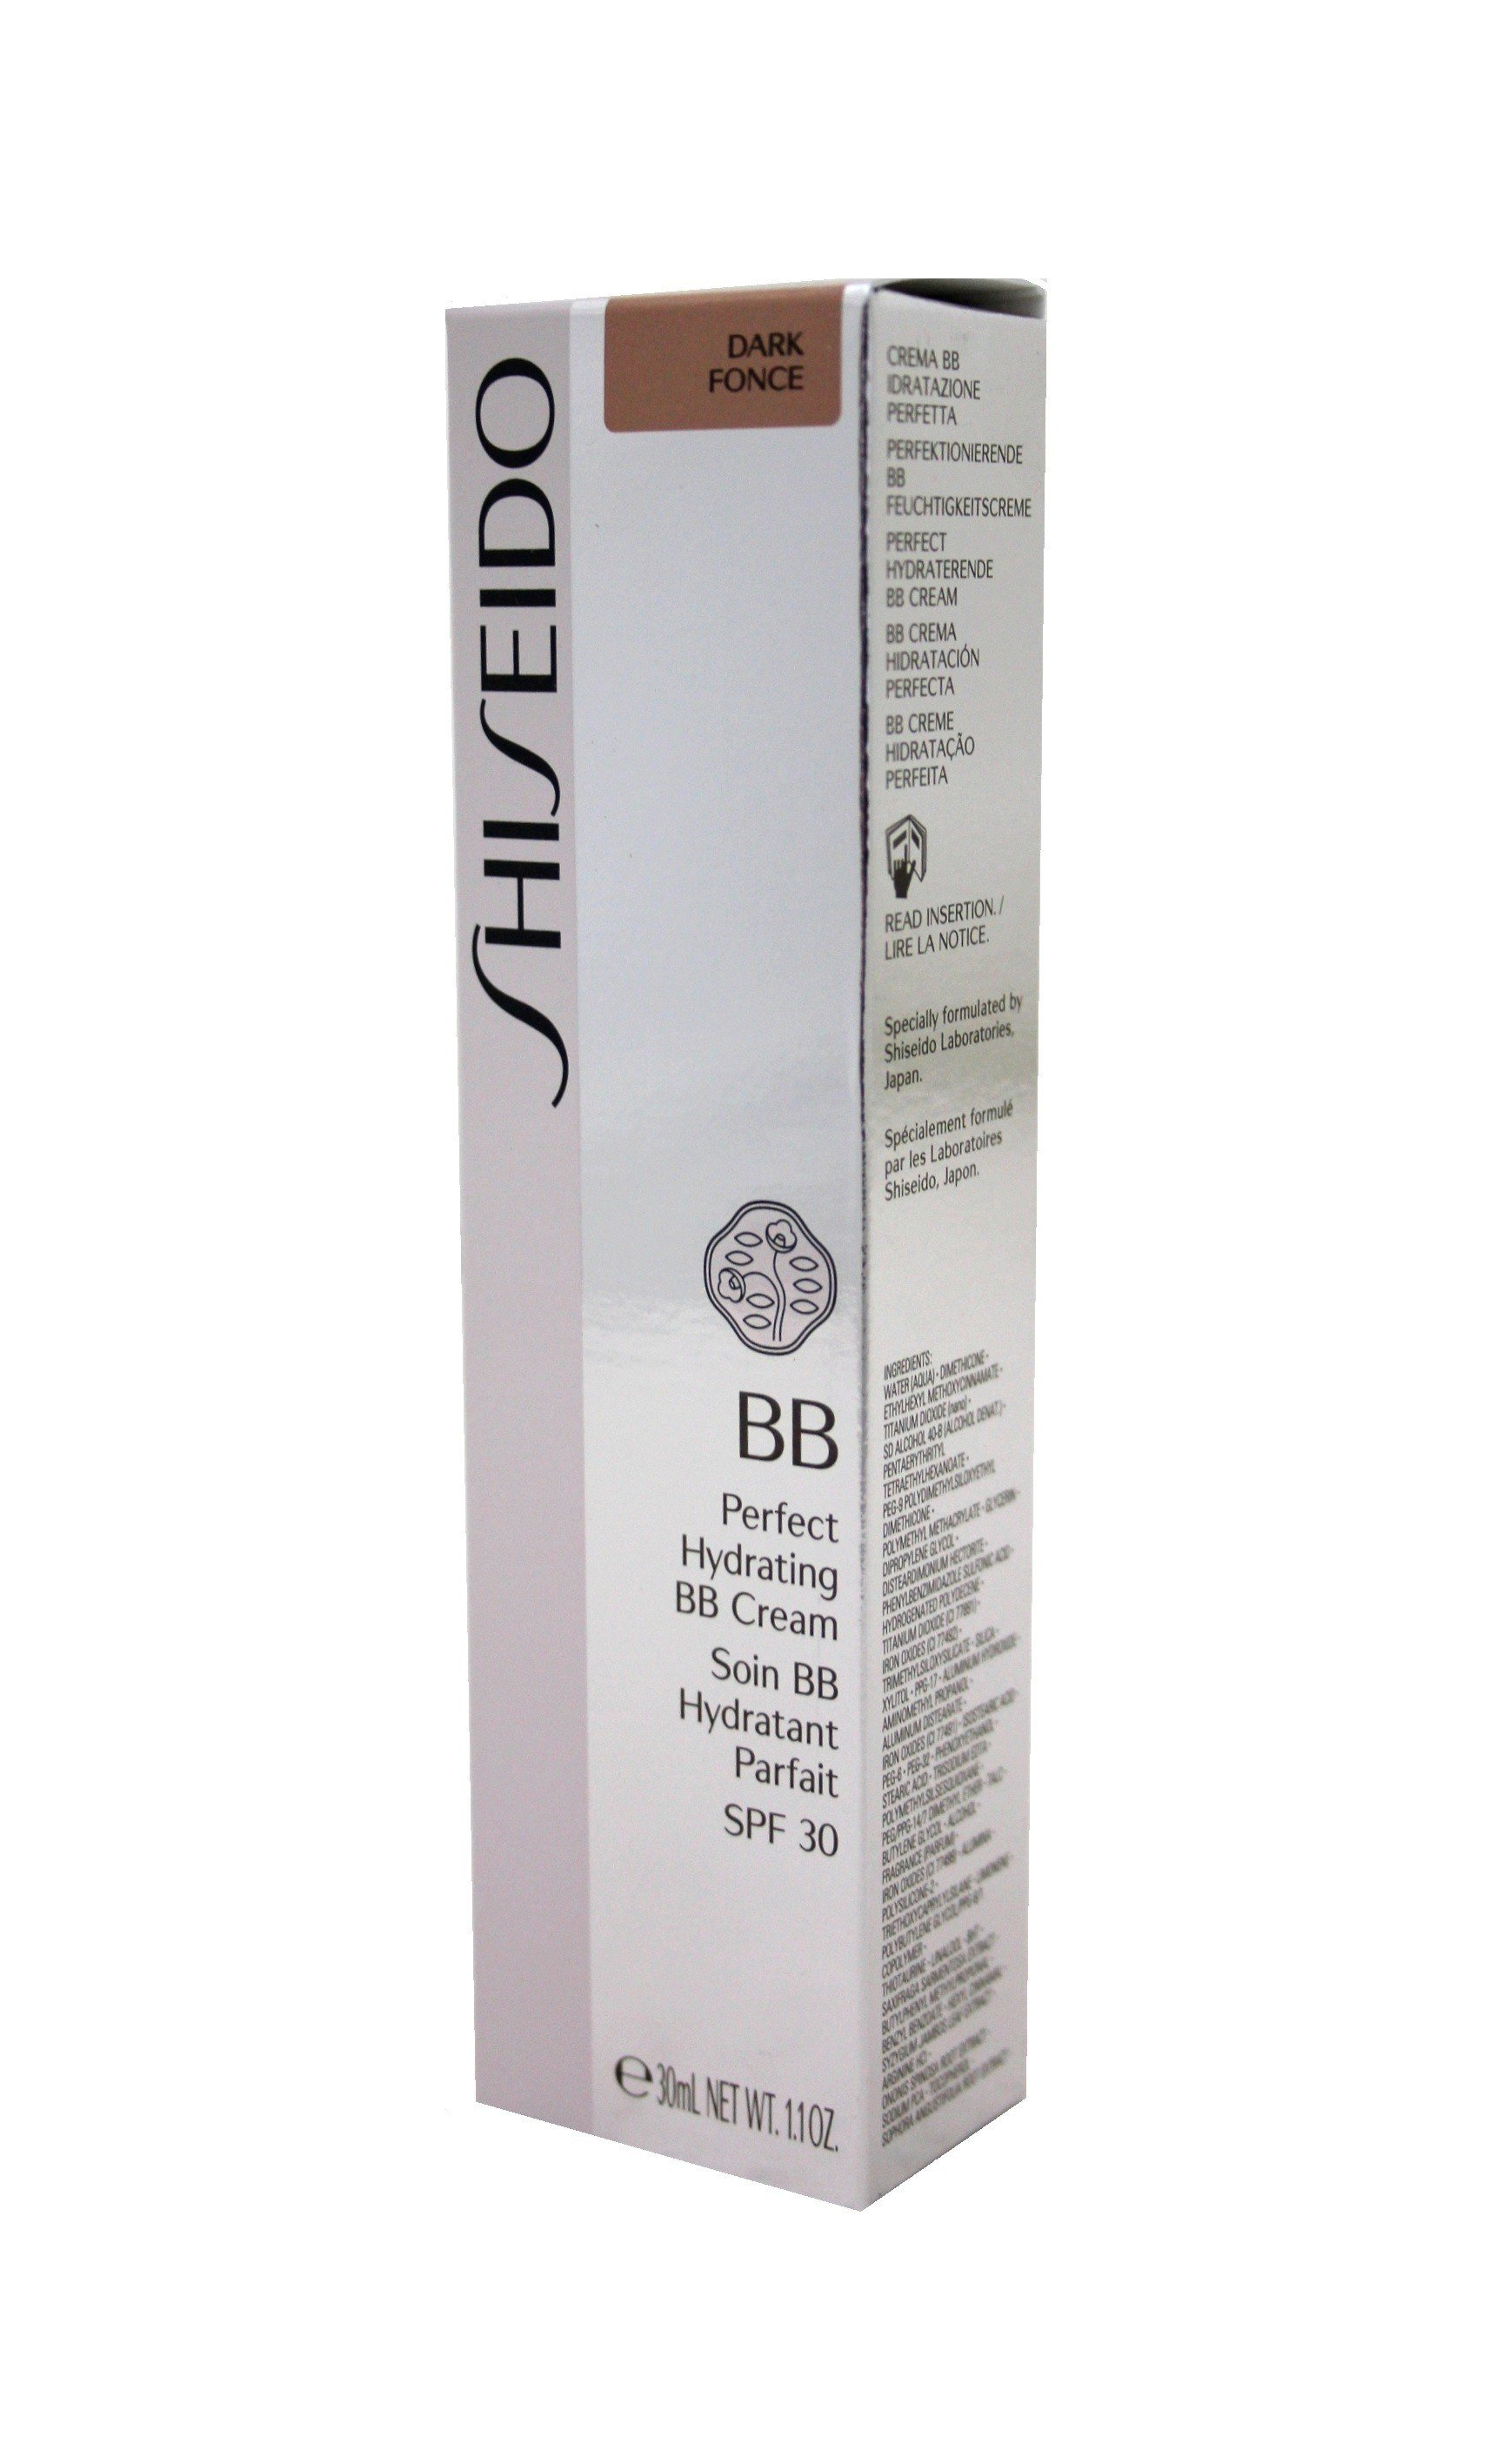 Shiseido Perfect Hydrating BB Cream SPF 30 Dark